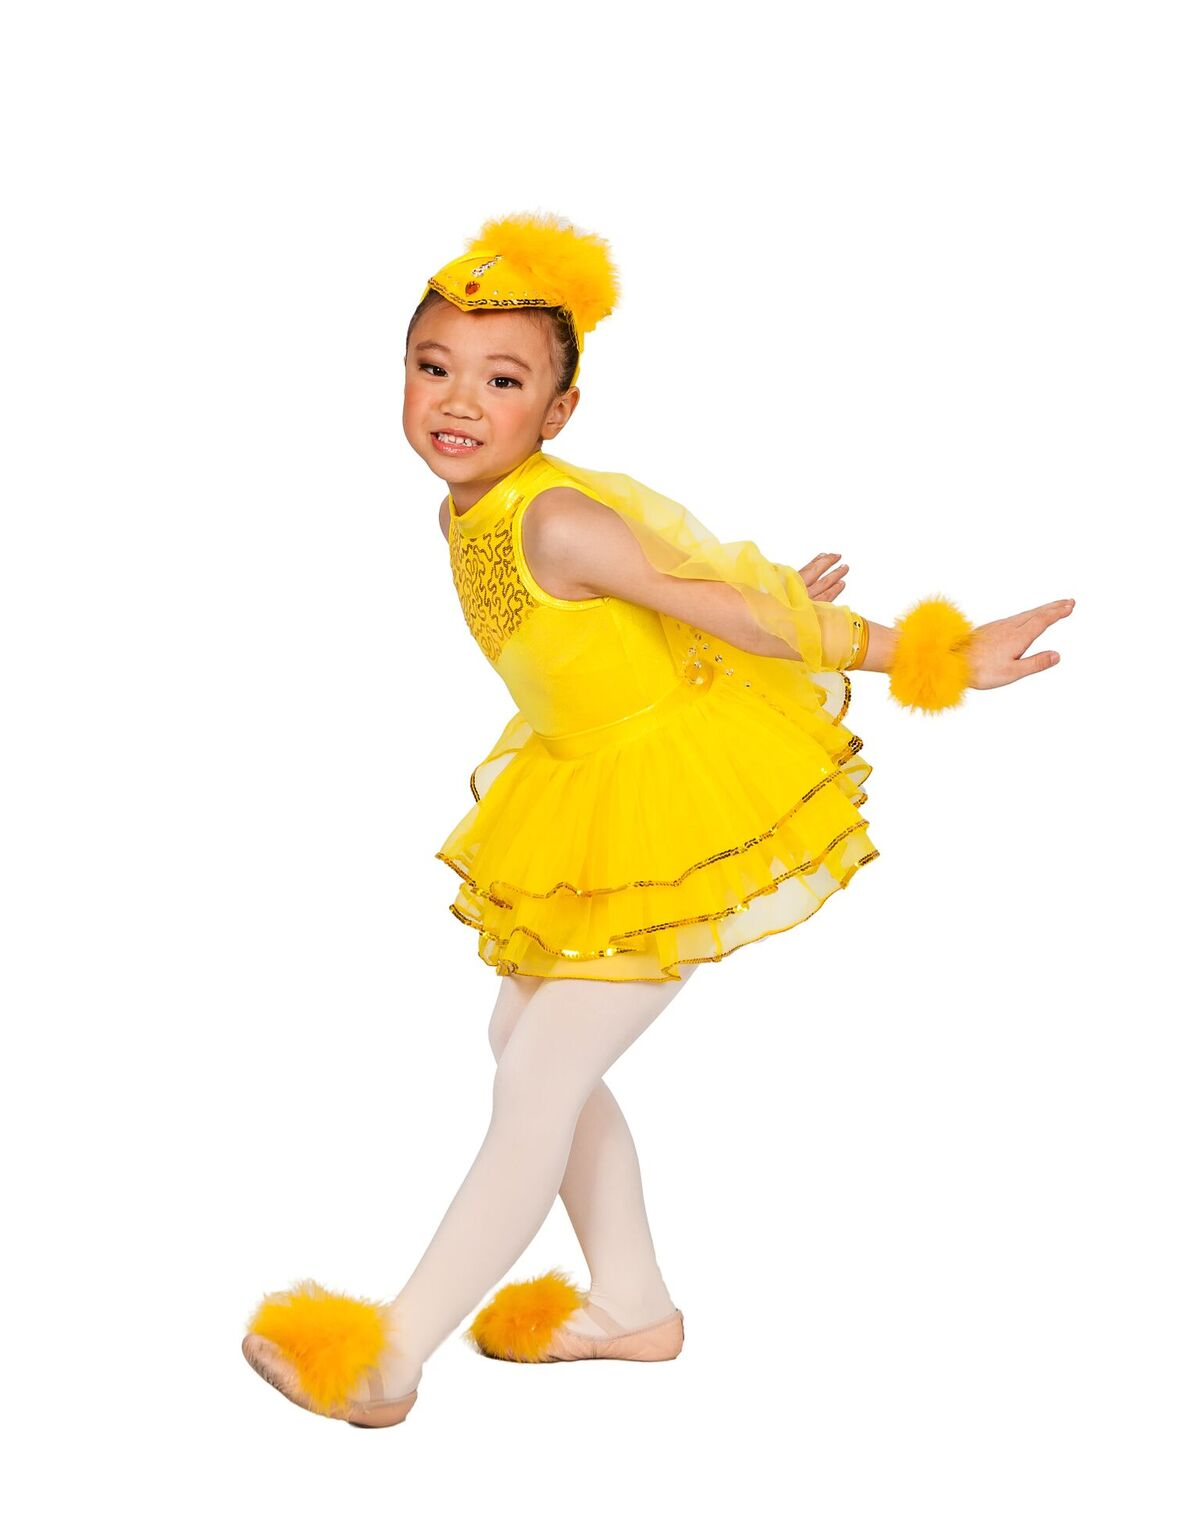 Little girl in yellow costume